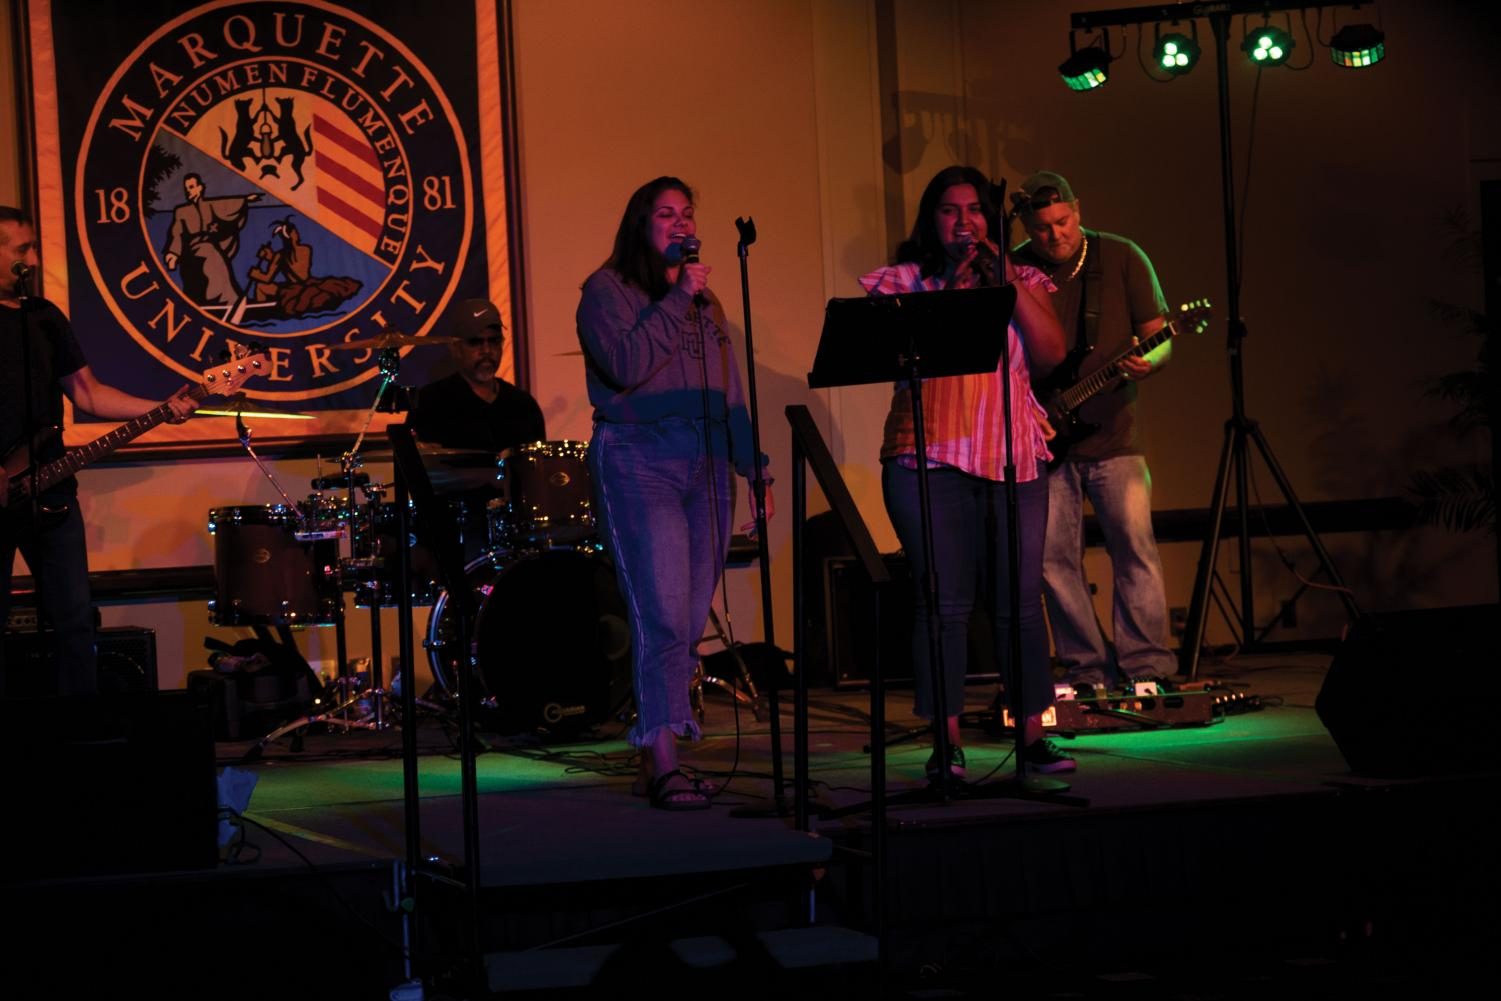 Students sing a duet onstage accompanied by a live band.